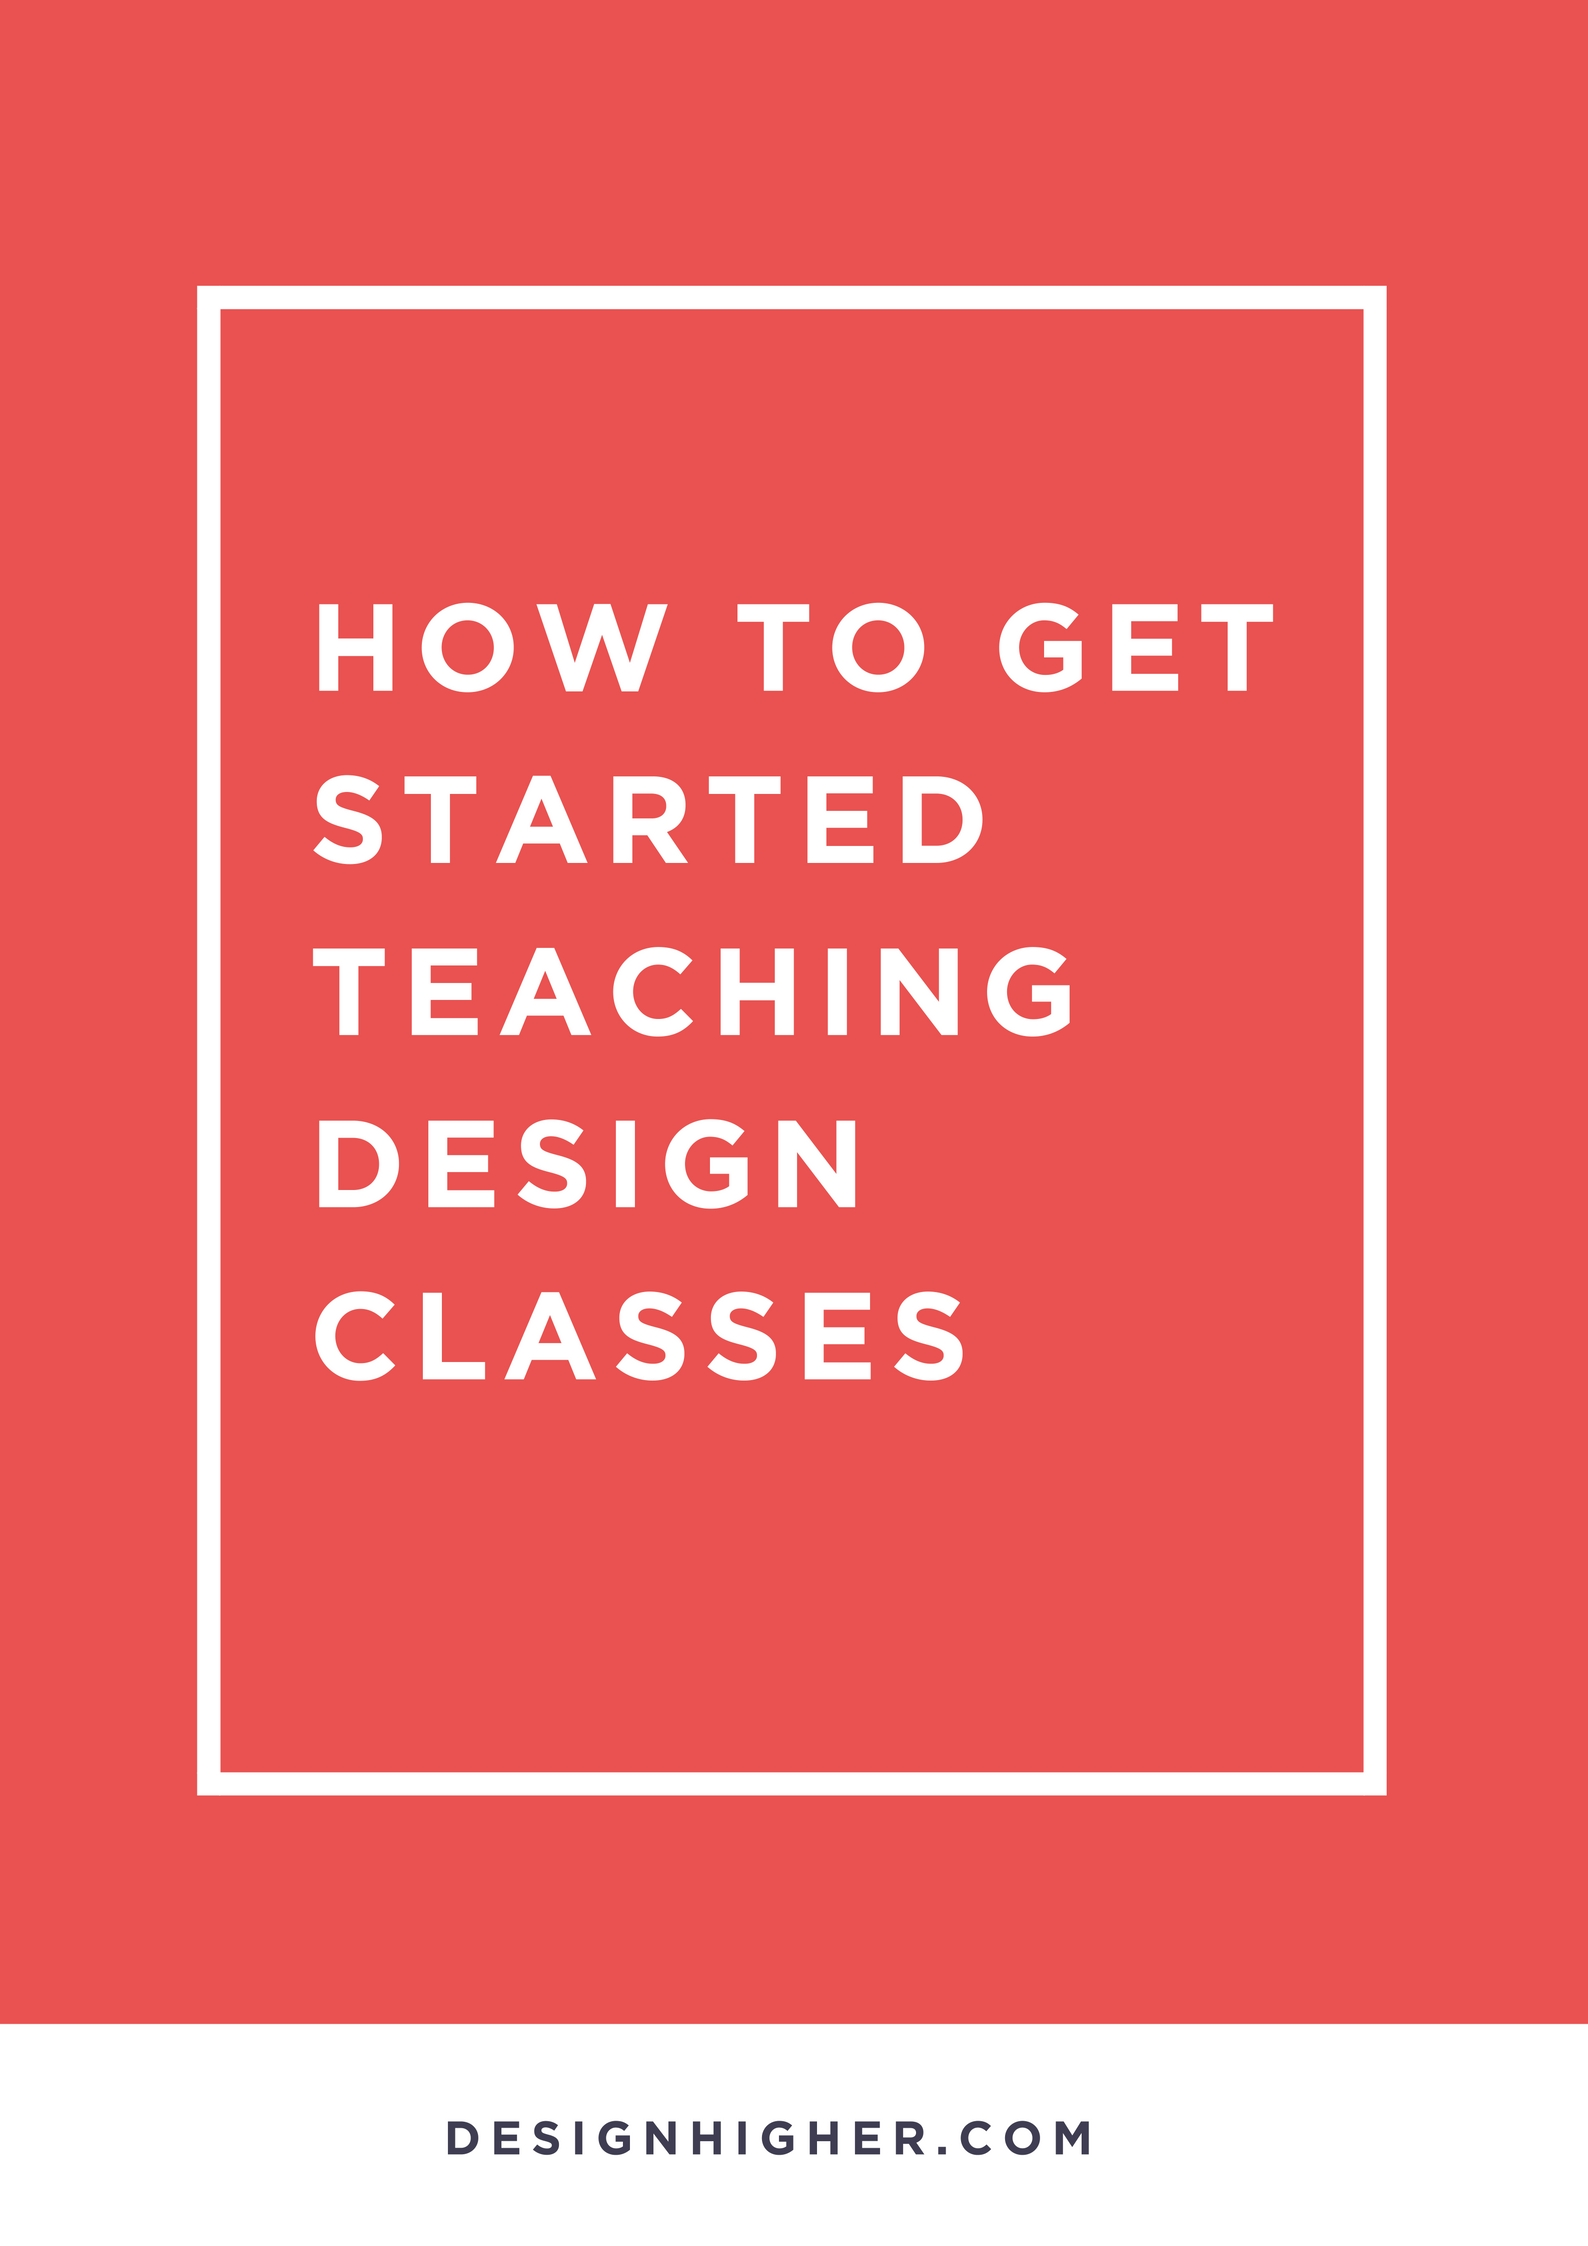 How to Get Started Teaching Design Classes - Learn More! // designhigher.com